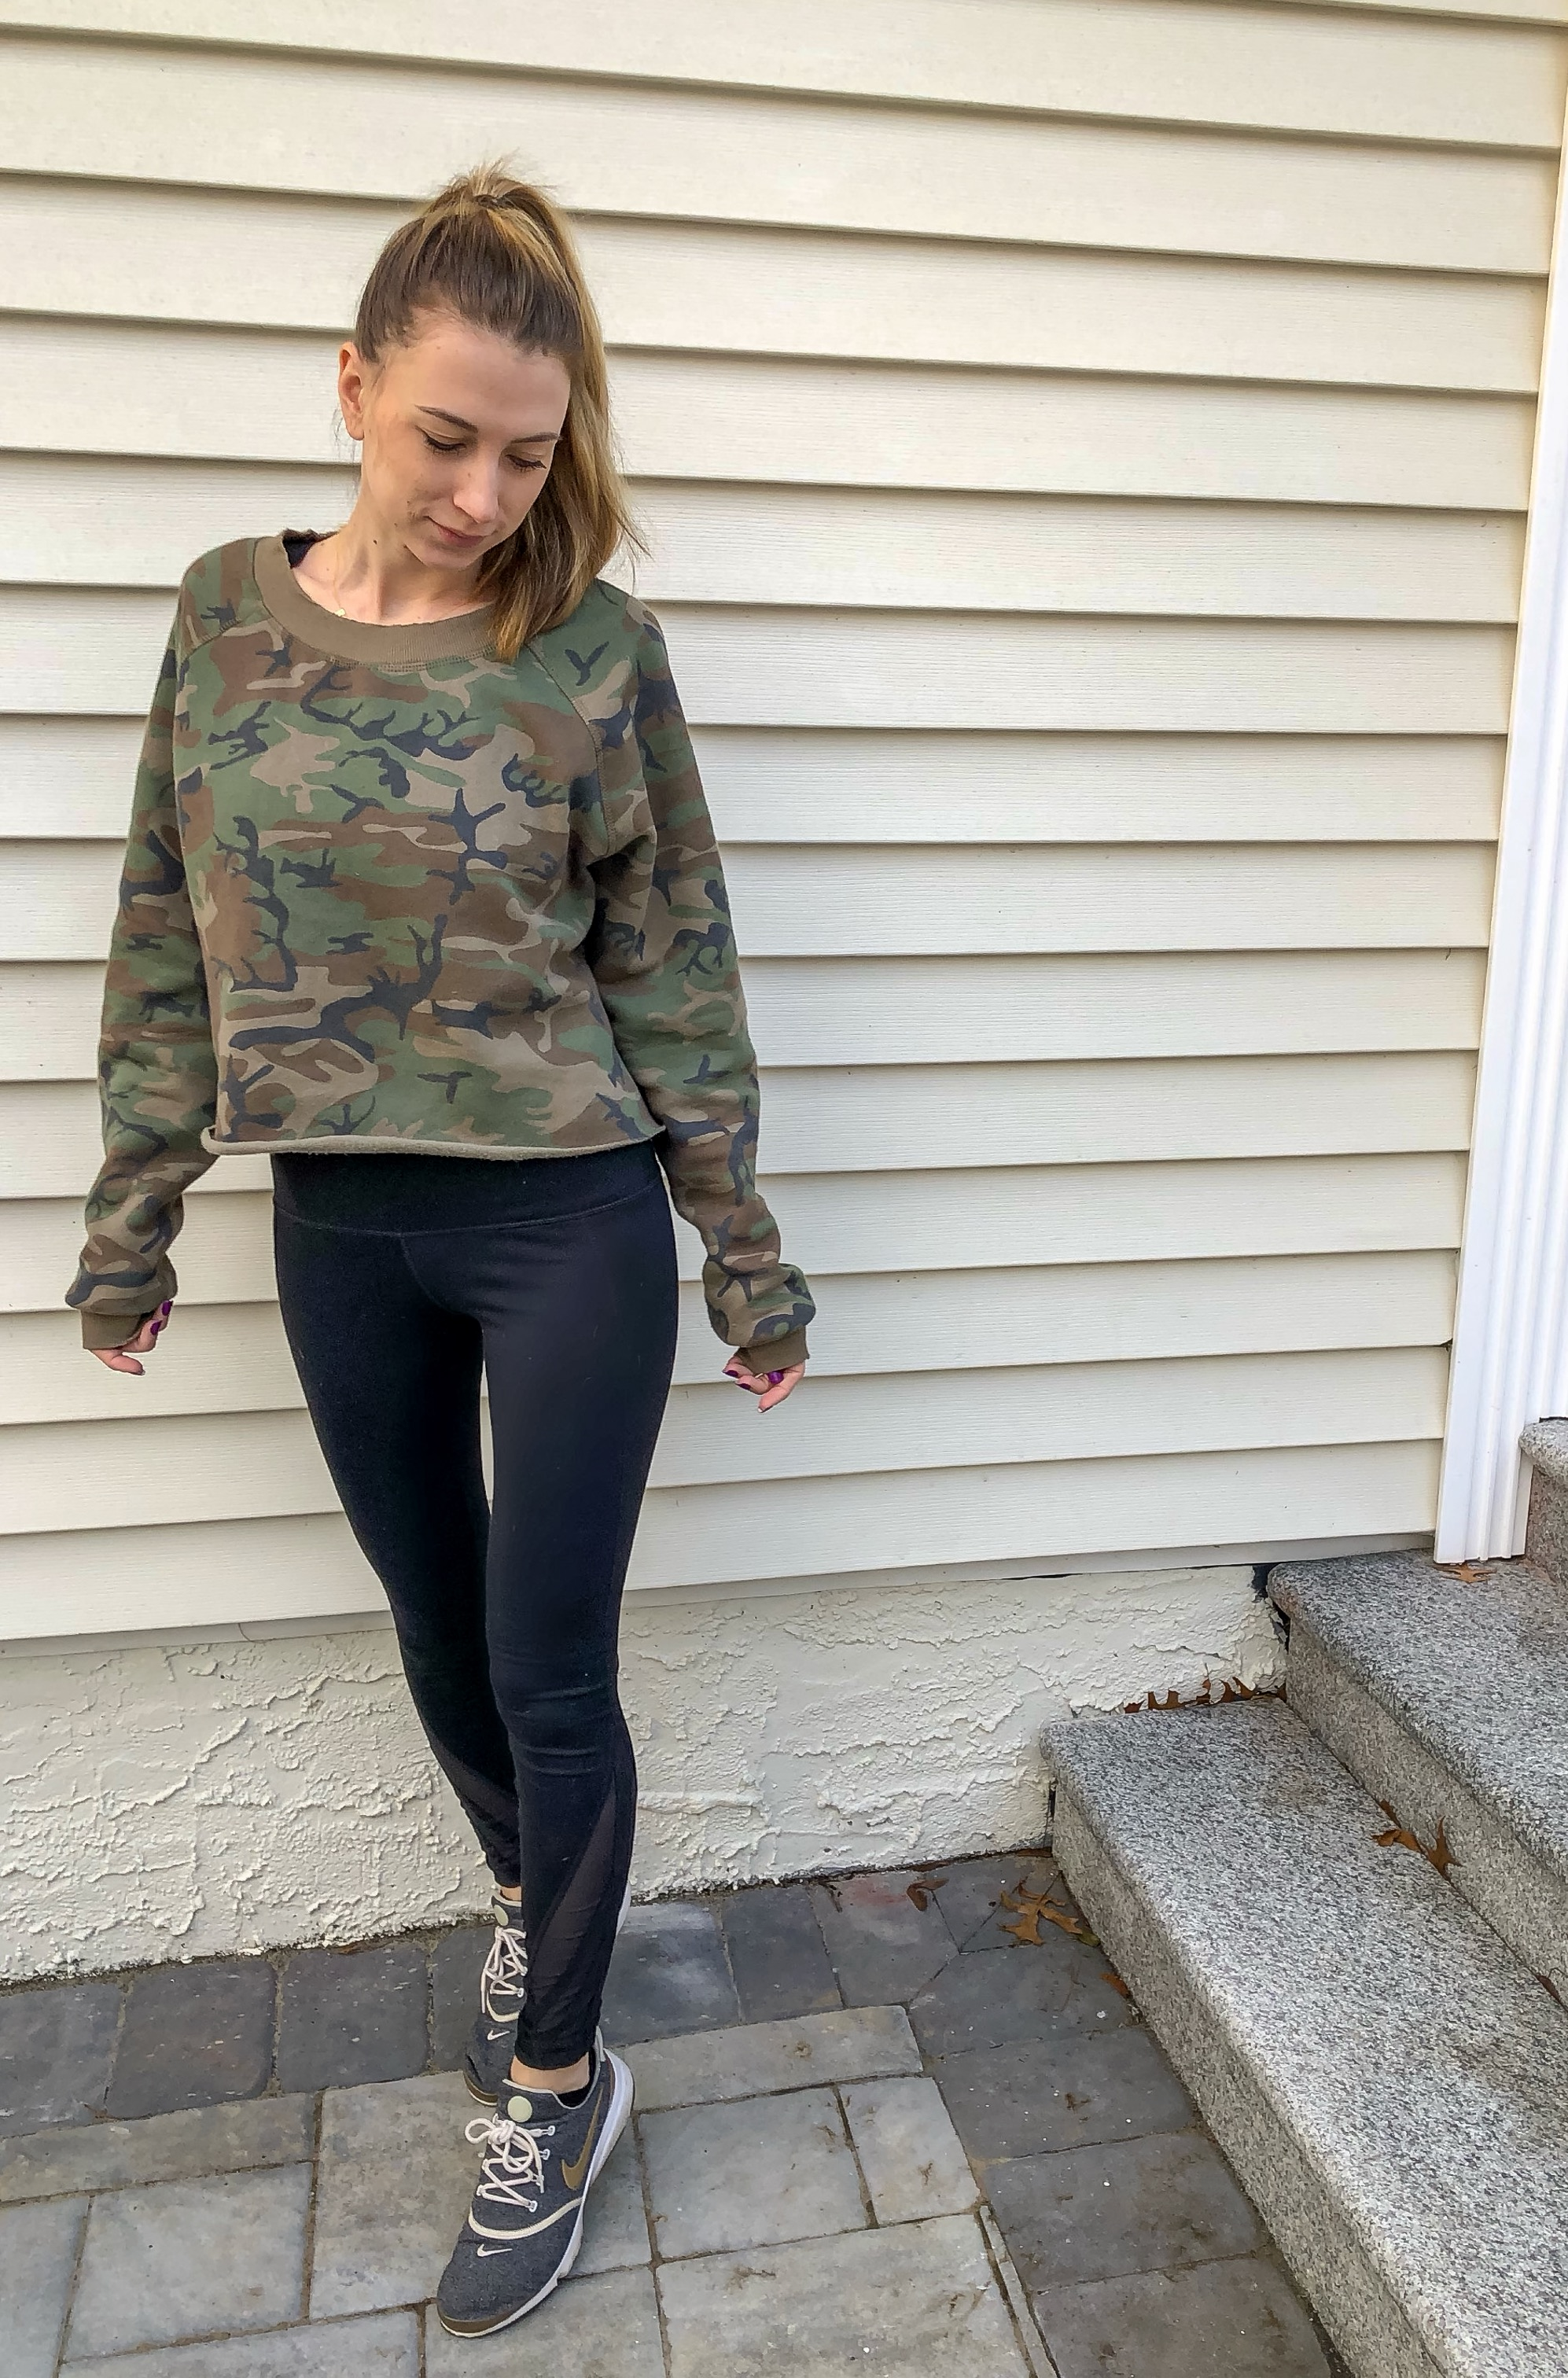 SHOP THIS CAMO CROPPED SWEATSHIRT BELOW! On SALE!